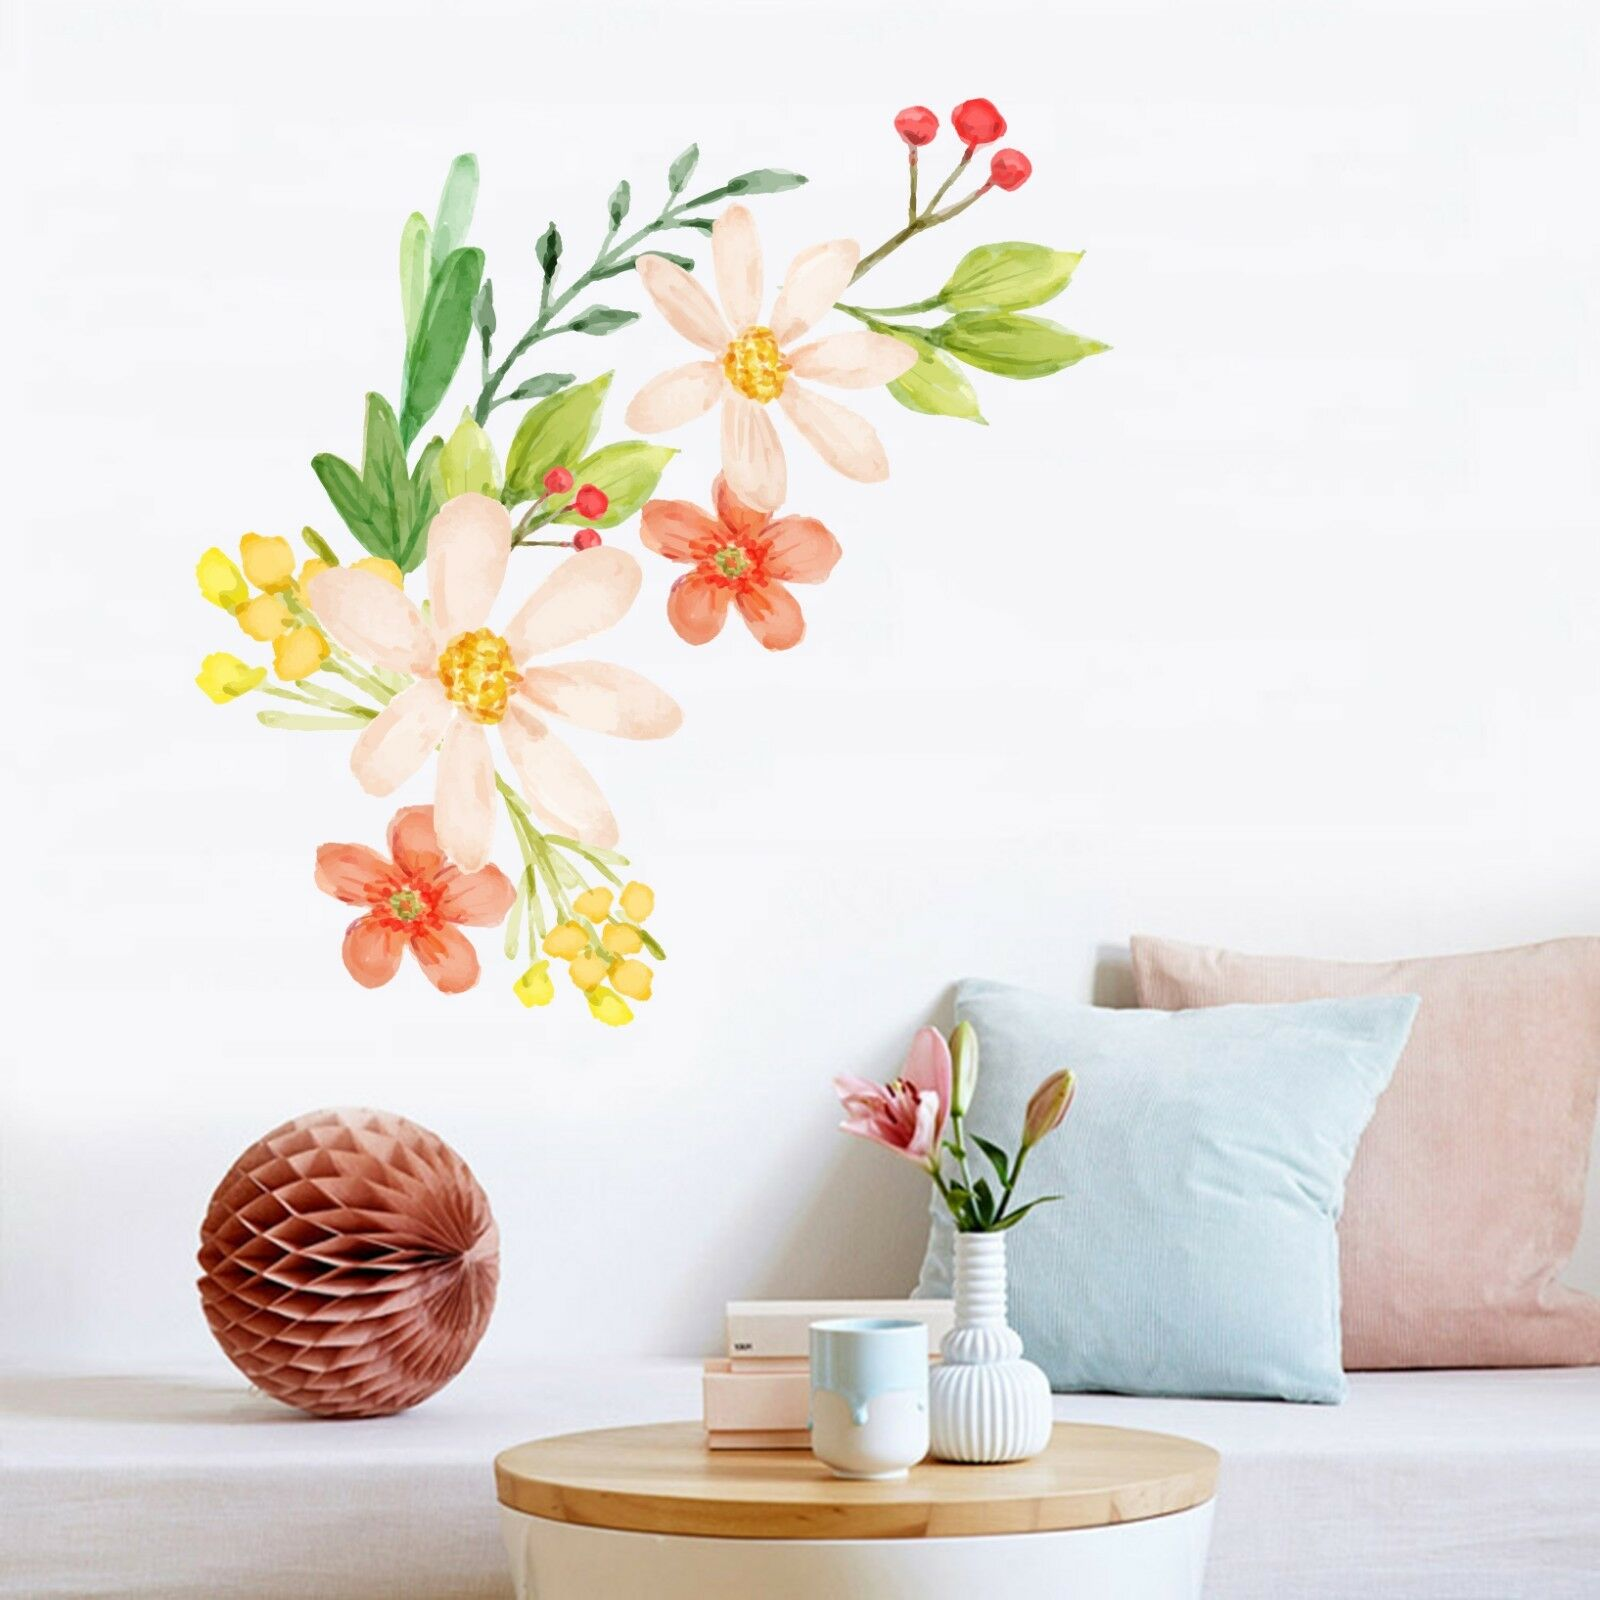 3D Beautiful Flower 51 Wallpaper Murals Floor Wall Print Decal Wall Sticker AU